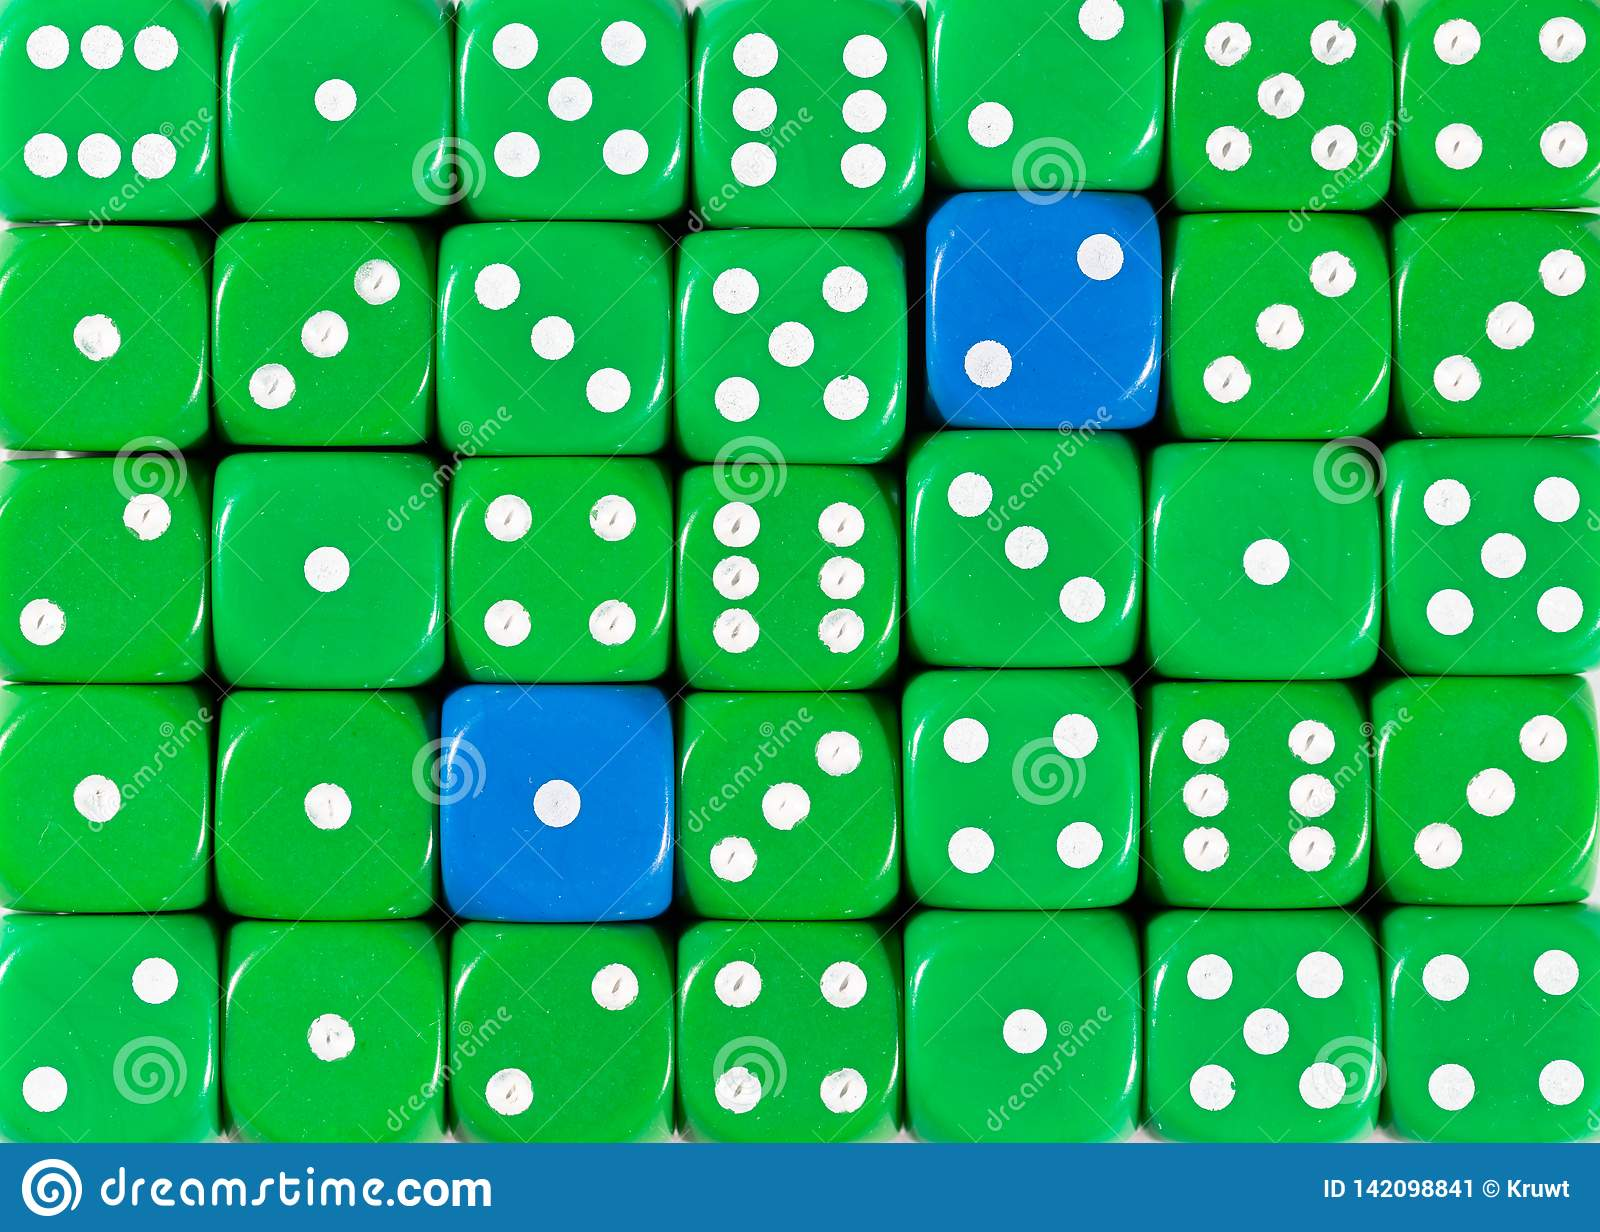 Background of random ordered green dices with two blue cubes